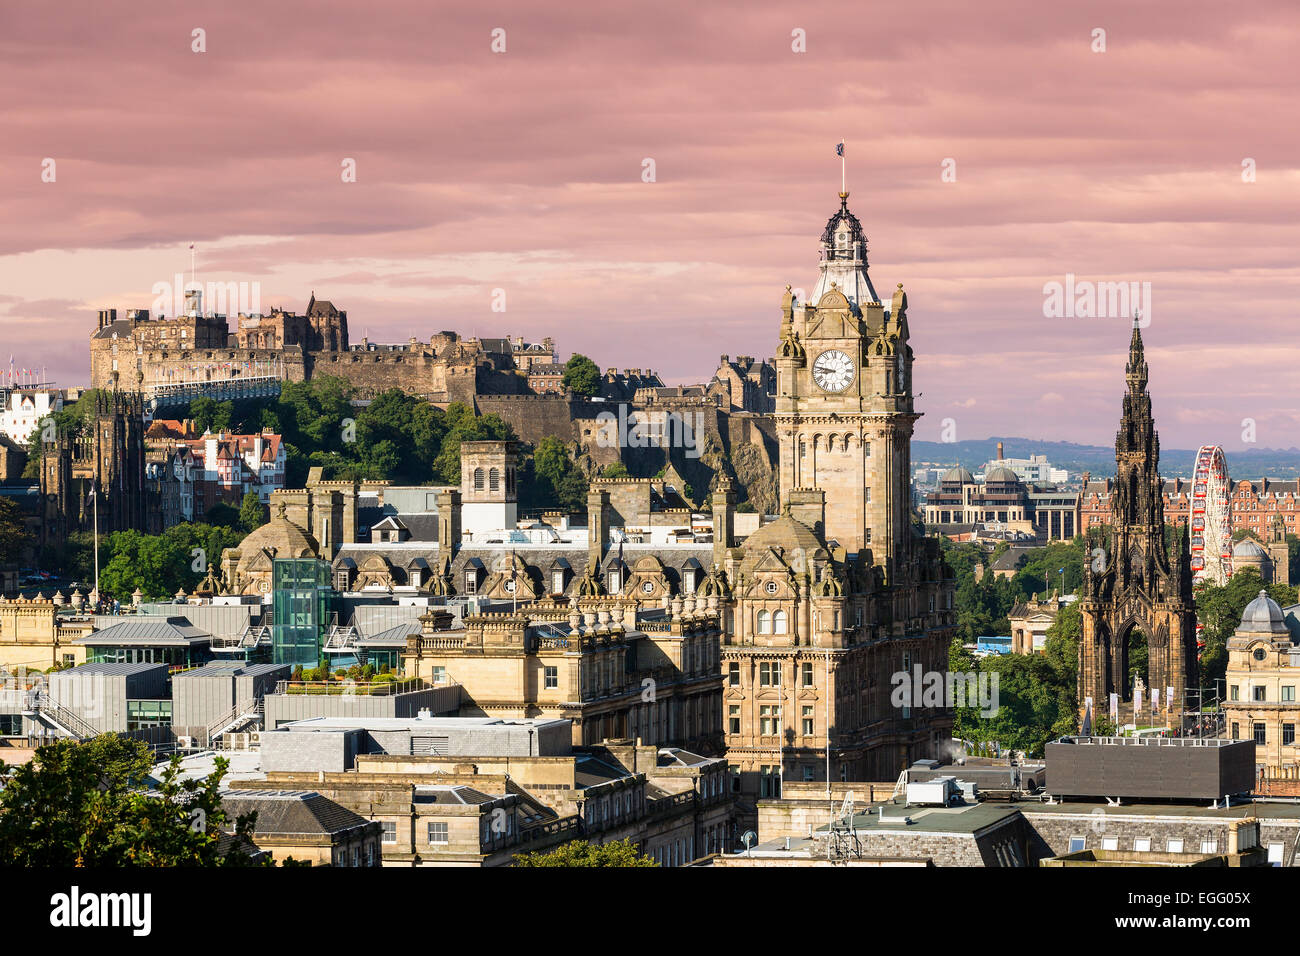 Edinburgh Cityscape, Scotland - Stock Image